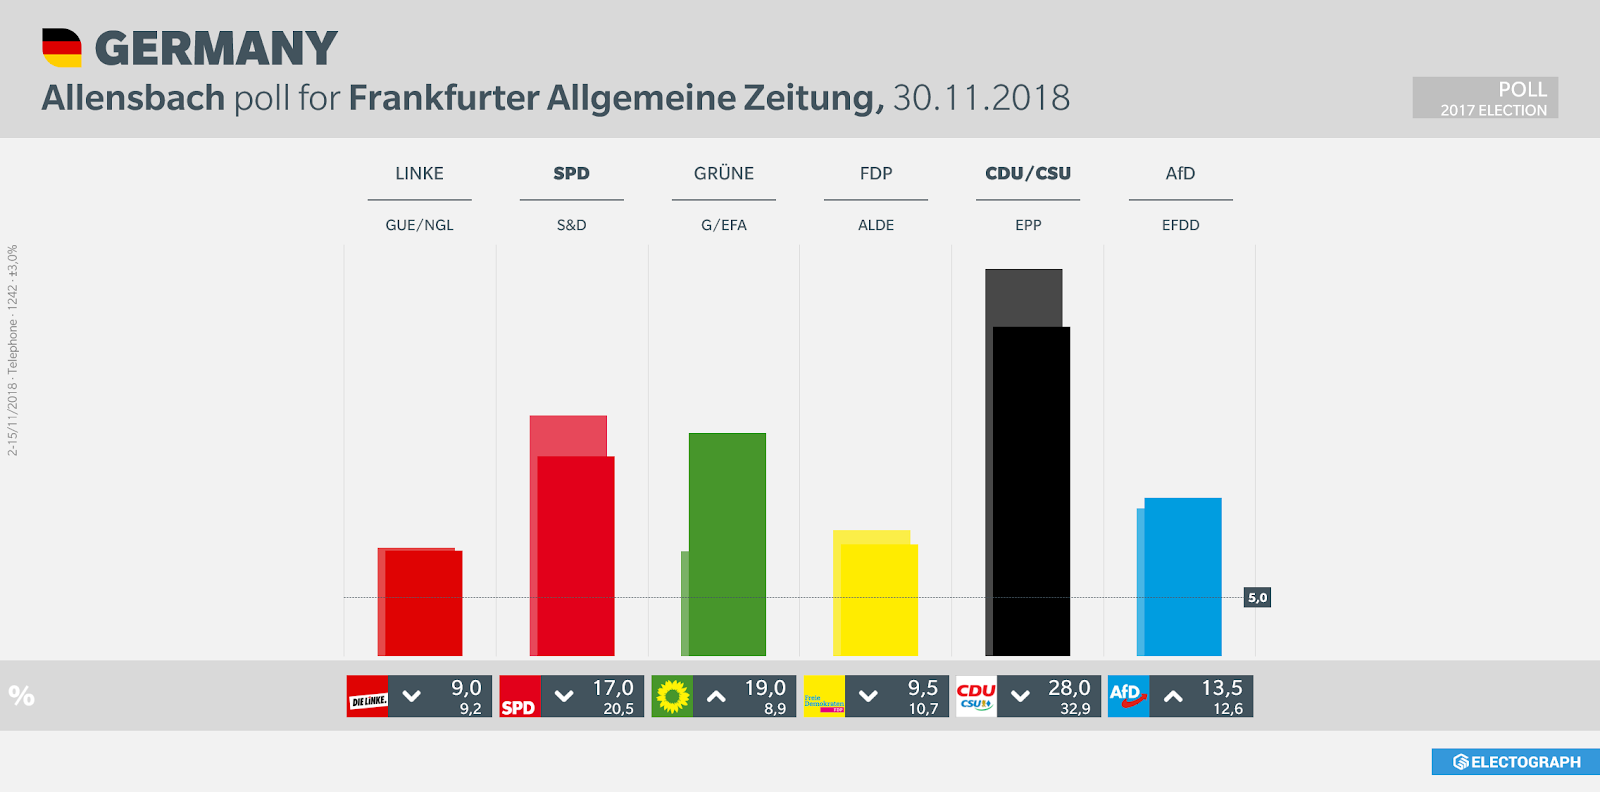 GERMANY: Allensbach poll chart for Frankfurter Allgemeine Zeitung, 30 November 2018